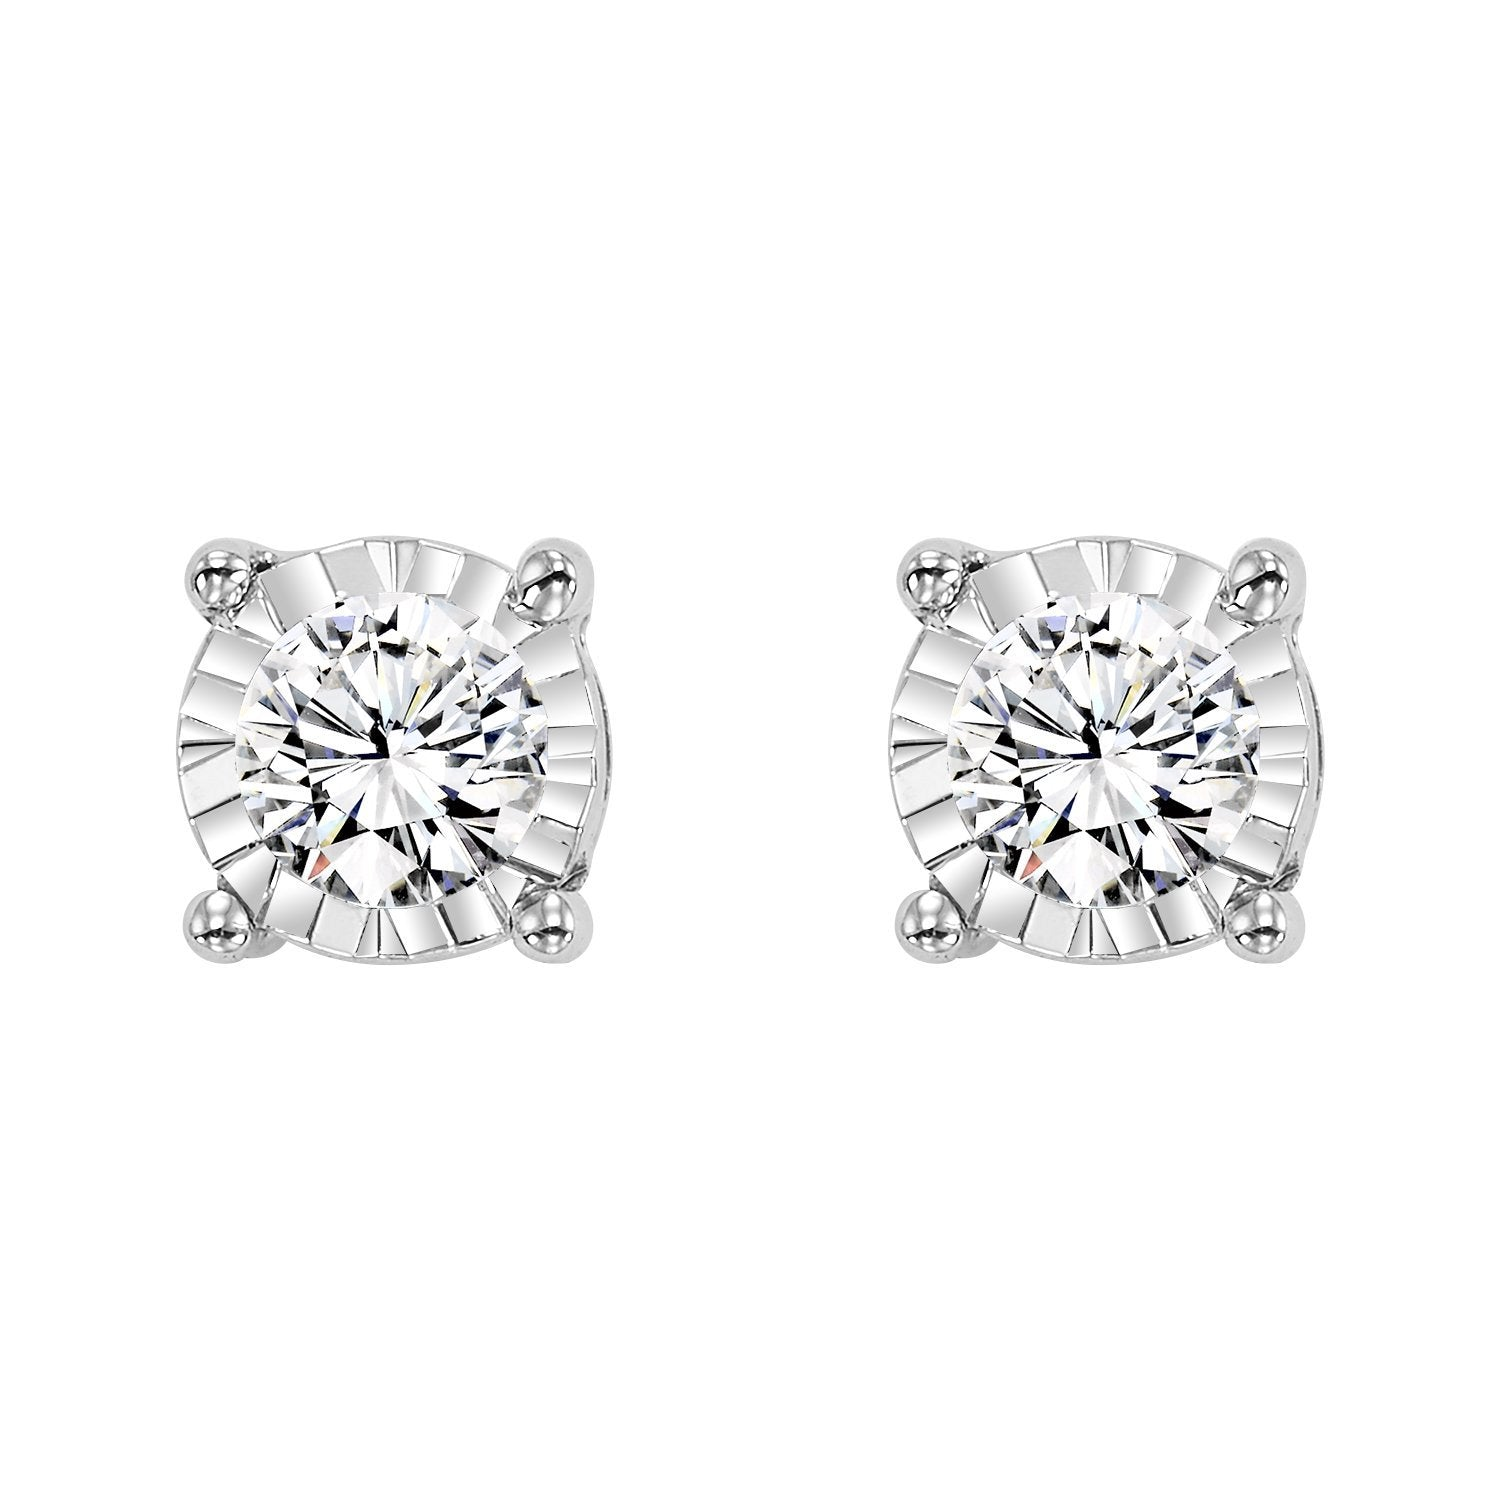 14K White Gold Diamond Studs 1/10 ct